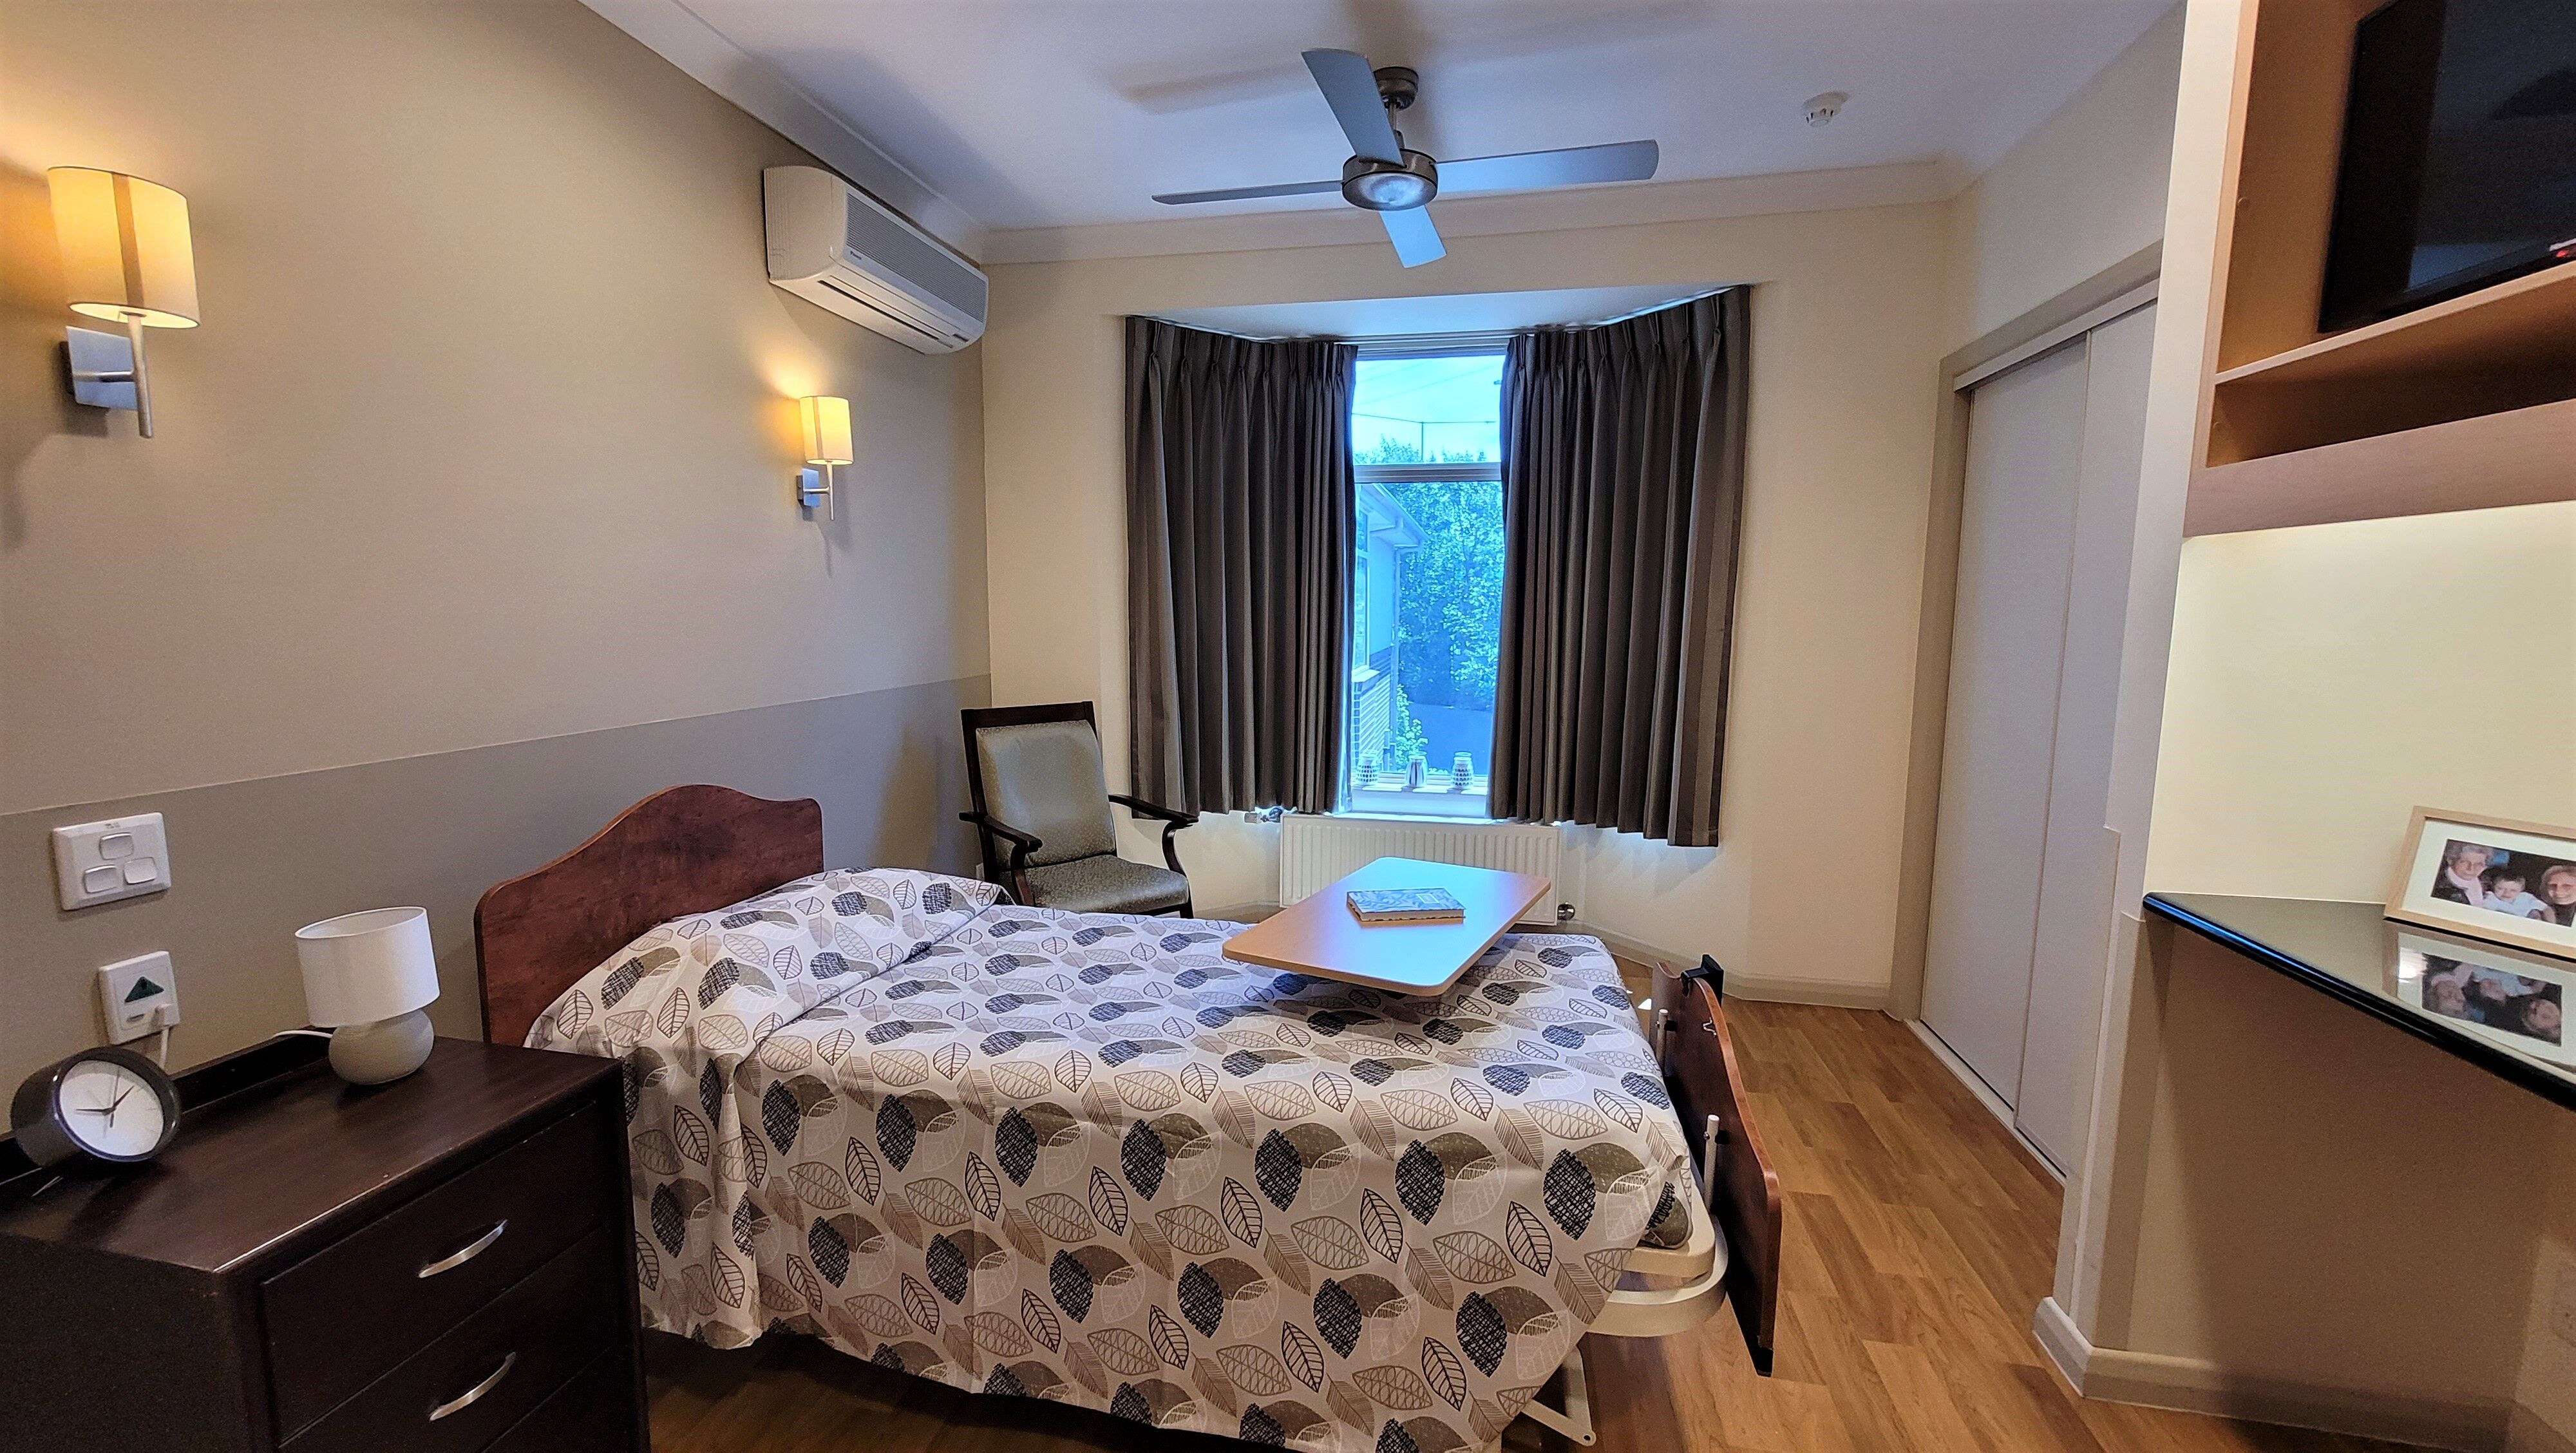 Bethel Aged Care, Mill Park VIC 3082 - Bedroom Example 1